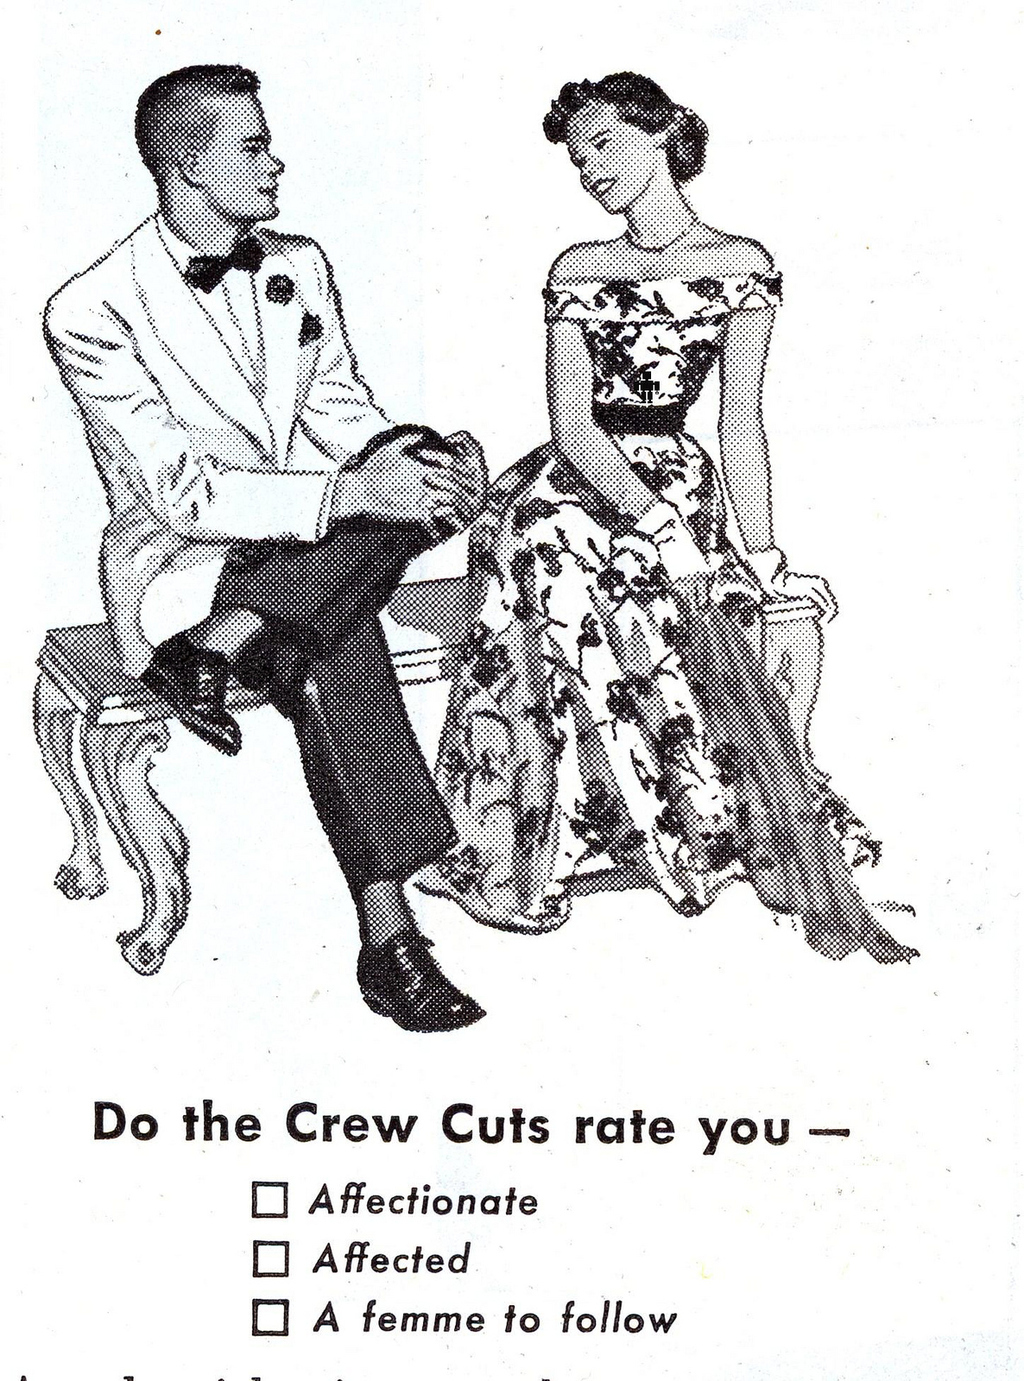 Teen Girl Dating Advice From The 1950s